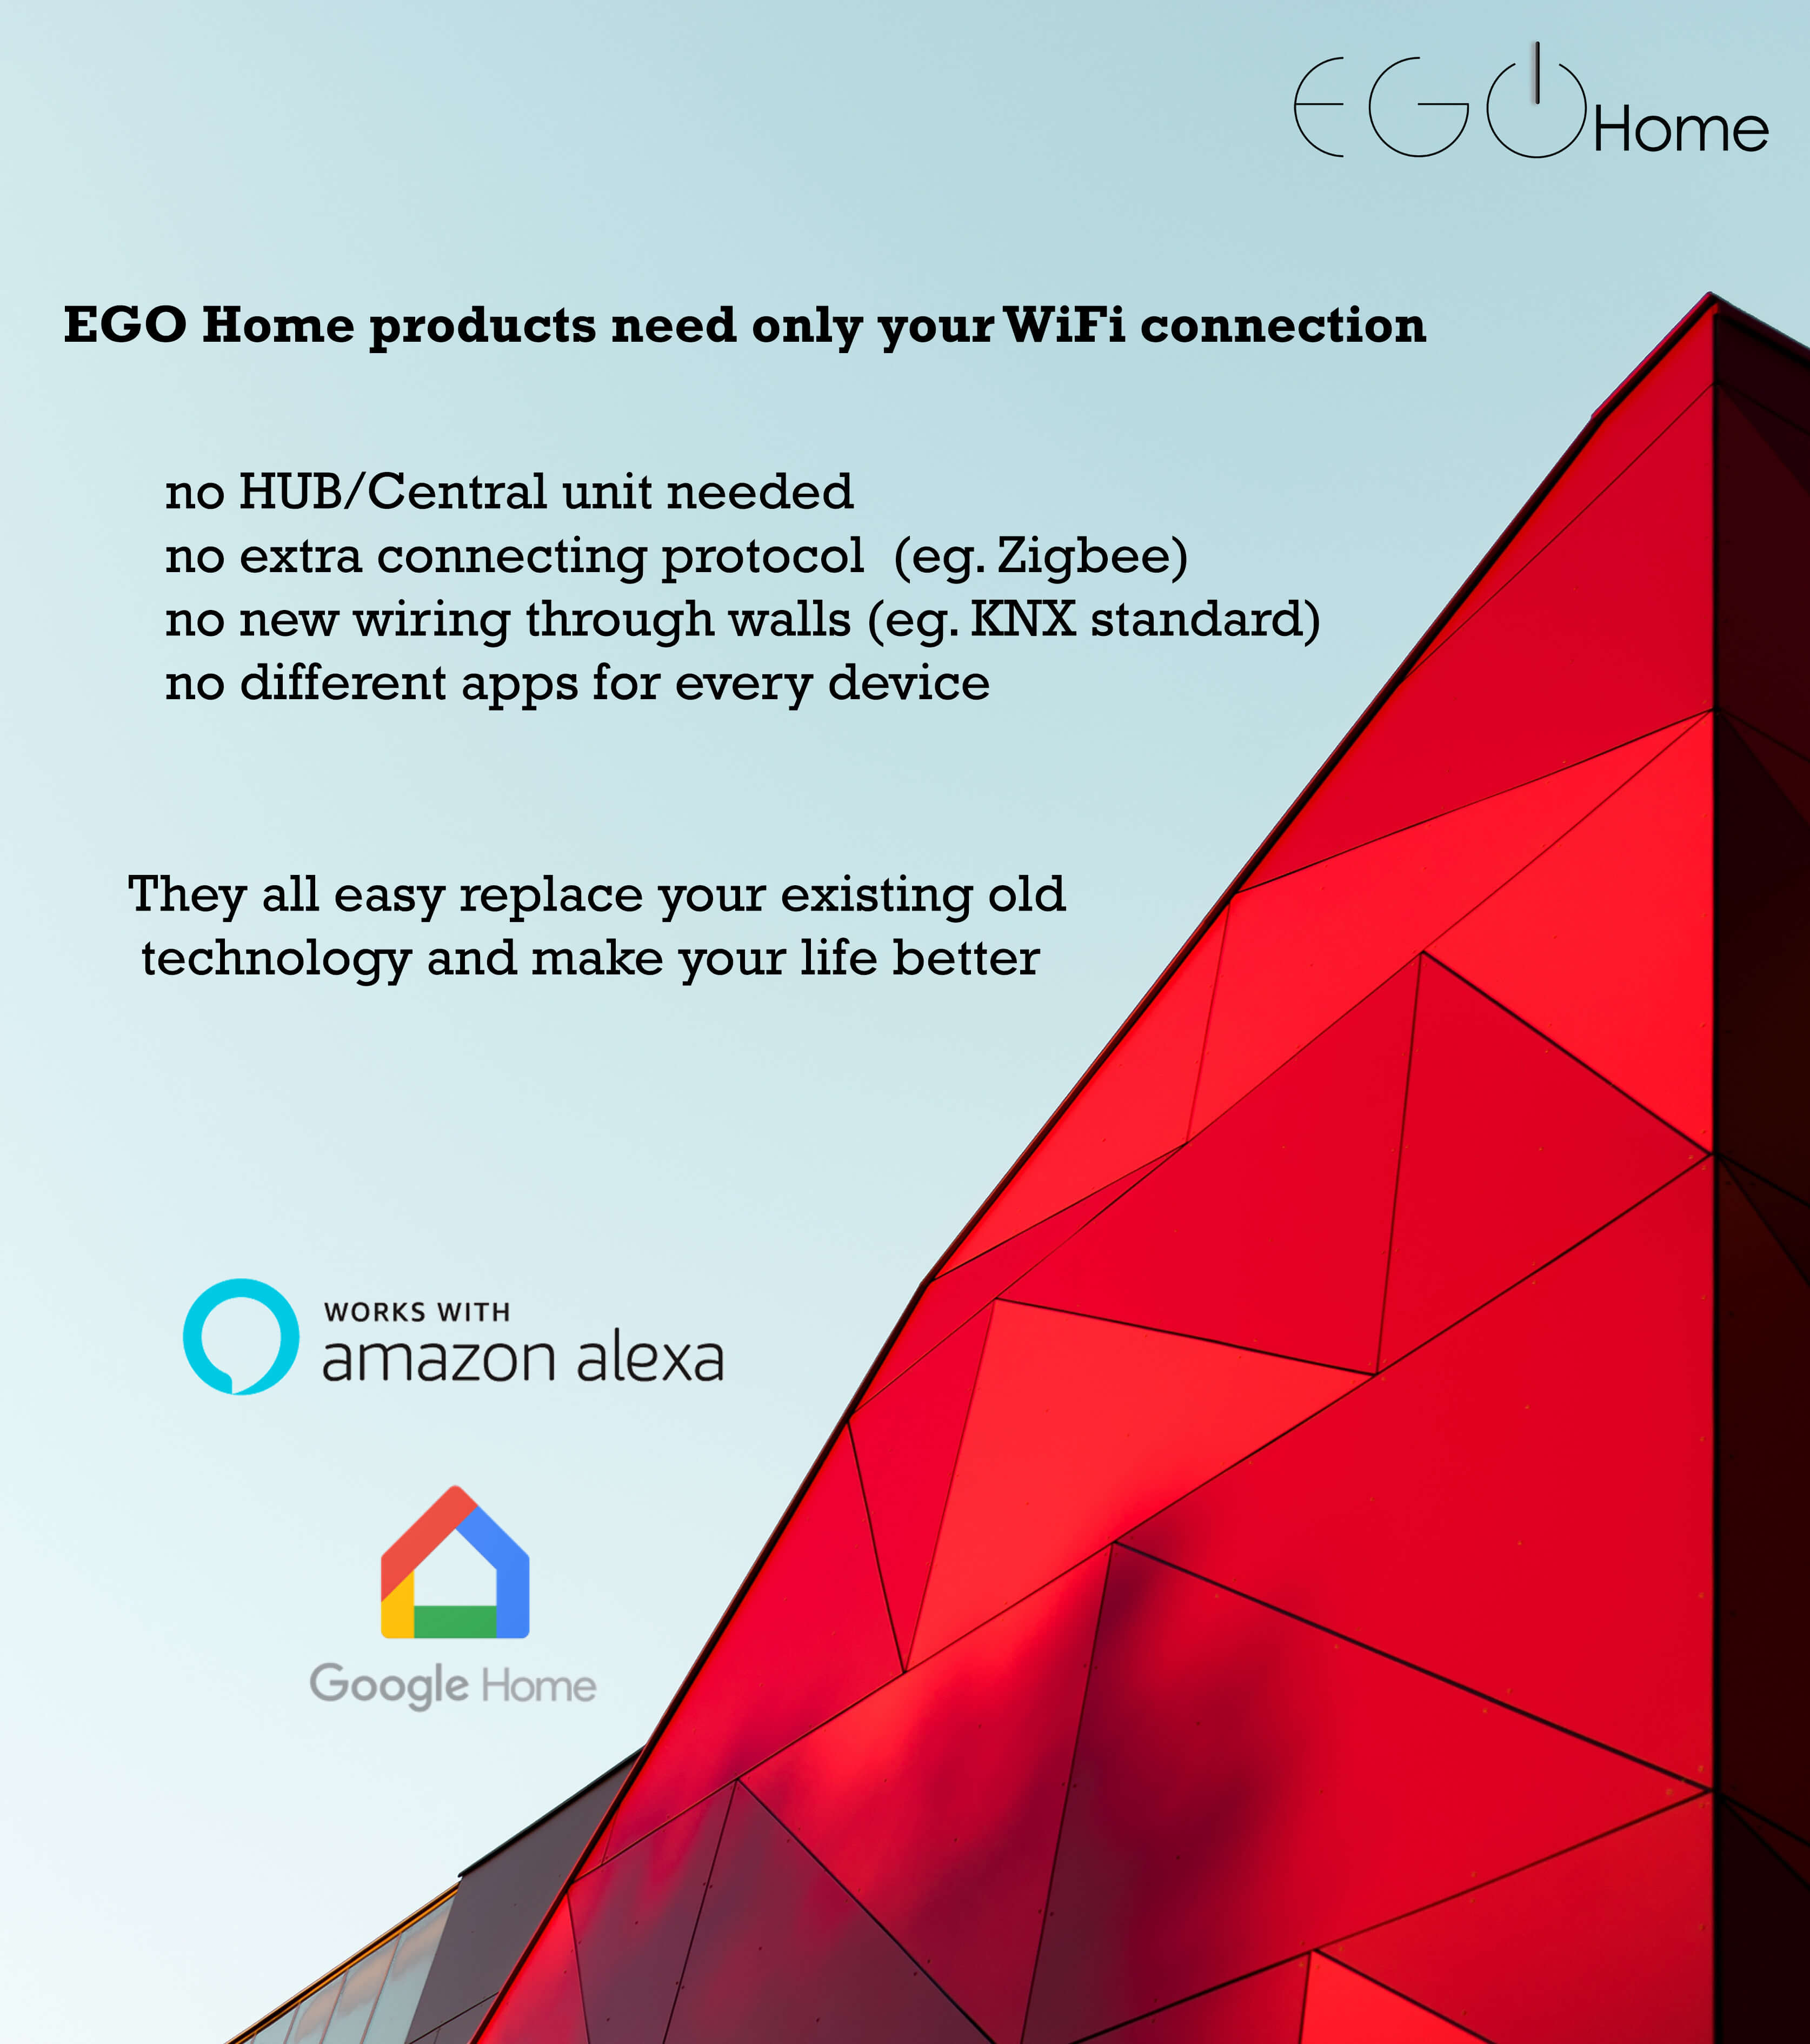 EGO Home products features